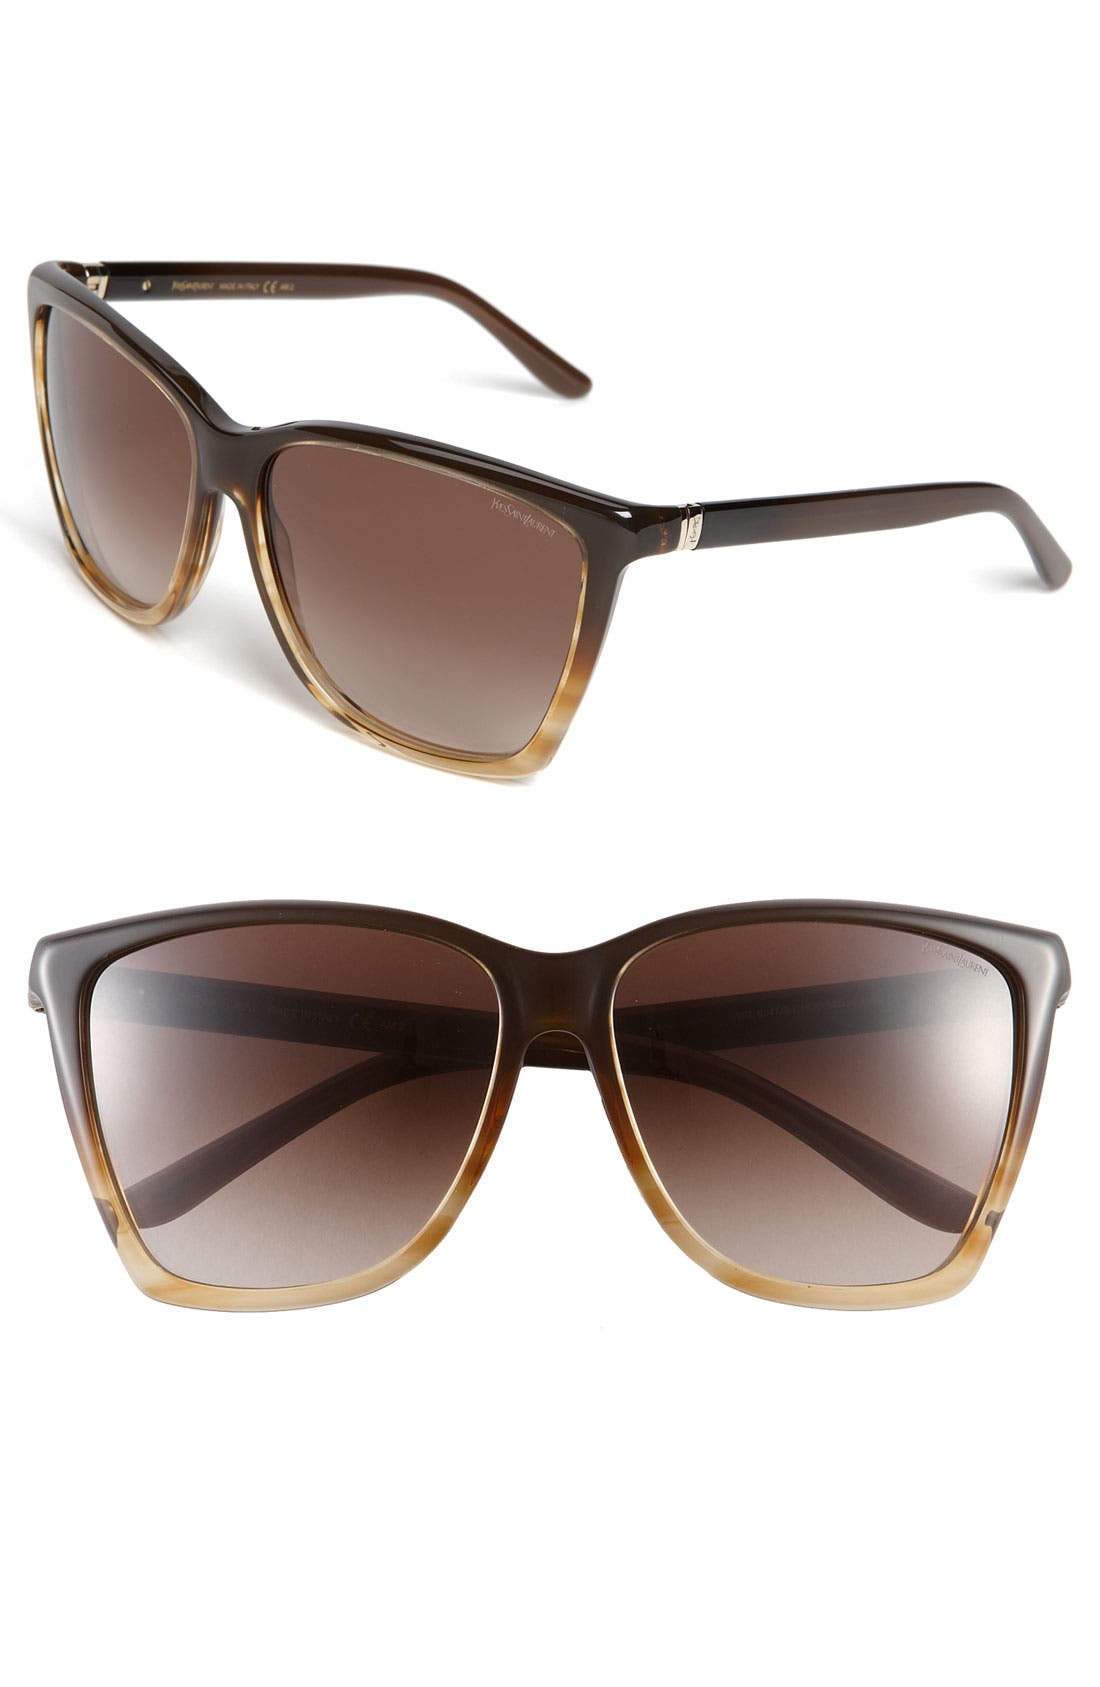 Alternate Image 1 Selected - Yves Saint Laurent Retro Inspired Sunglasses